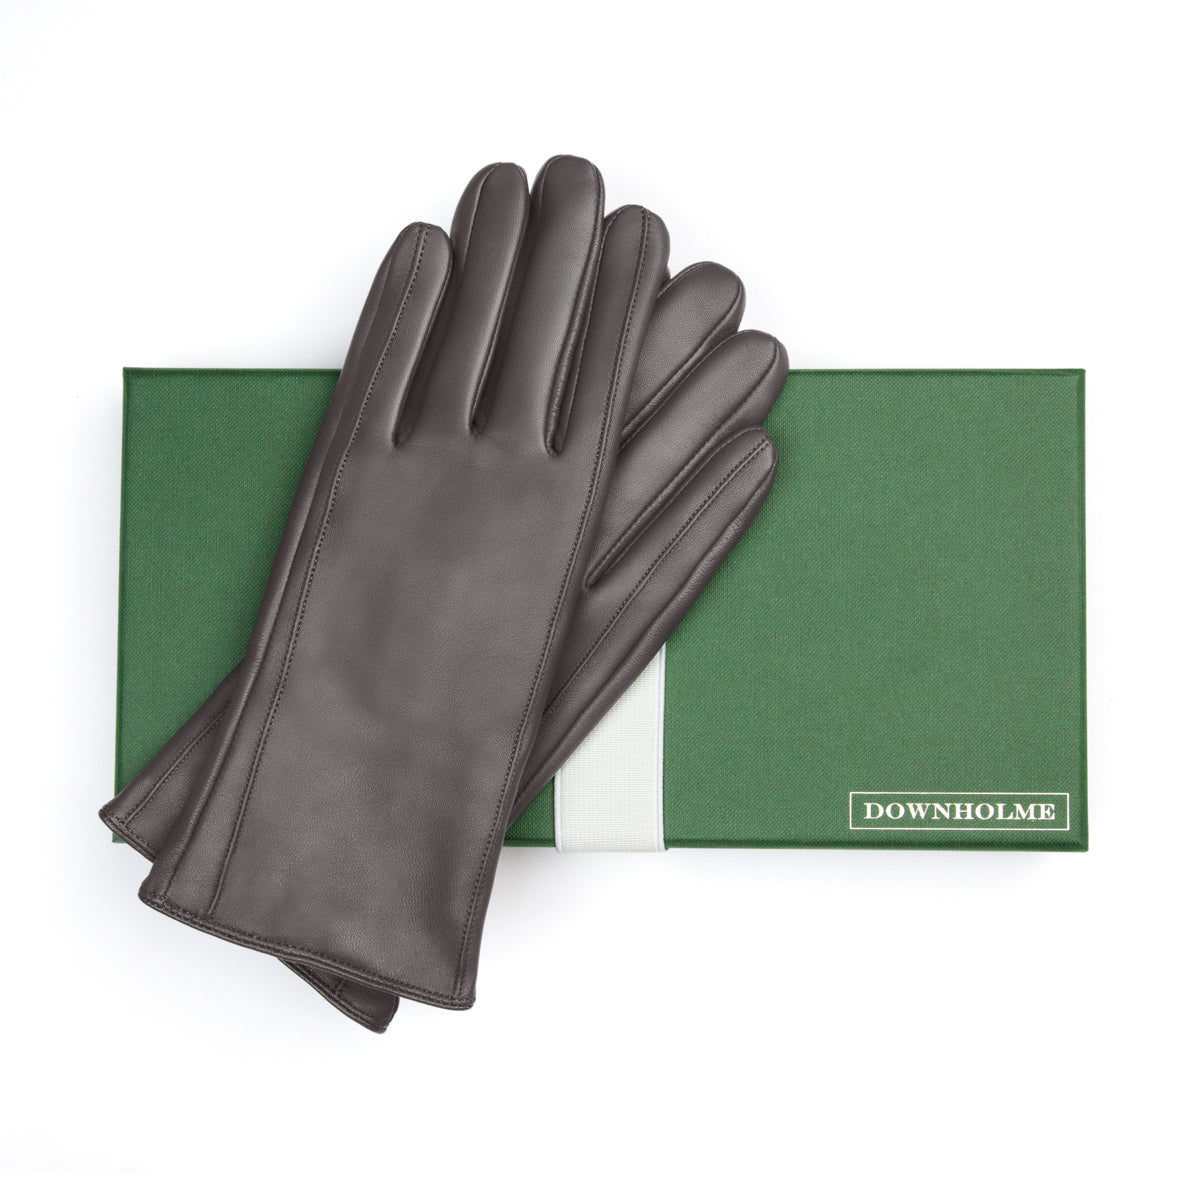 Women's Vegan Leather Gloves - Gray, DH-VLW-GRYS, DH-VLW-GRYM, DH-VLW-GRYL, DH-VLW-GRYXL